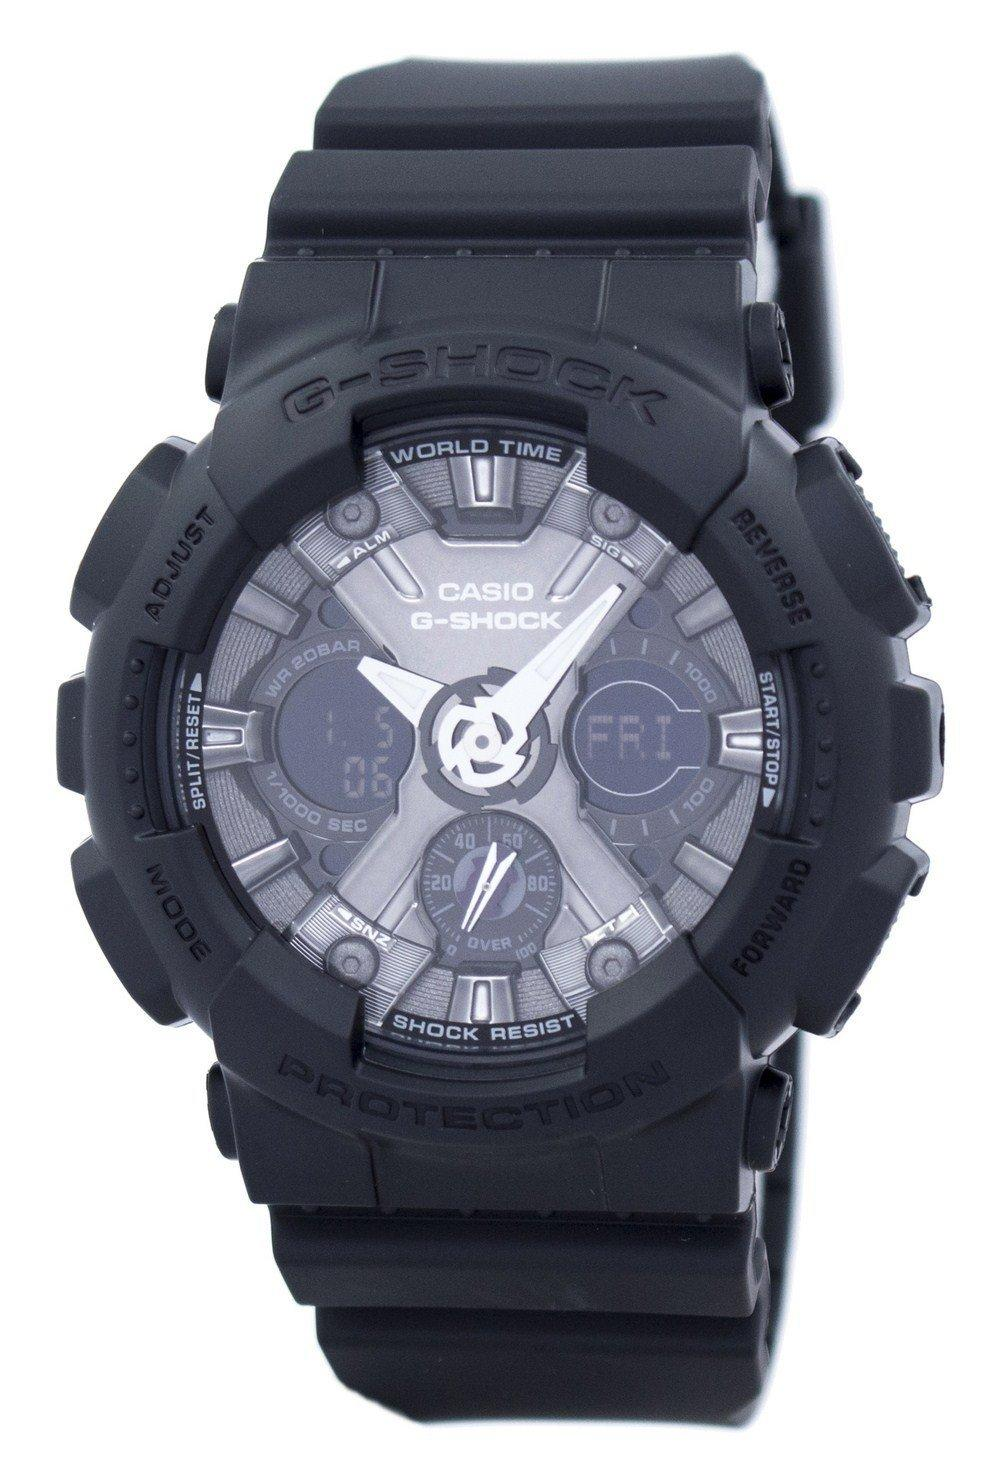 Casio G-Shock S Series Shock Resistant World Time GMA-S120MF-1A GMAS120MF-1A Women's Watch